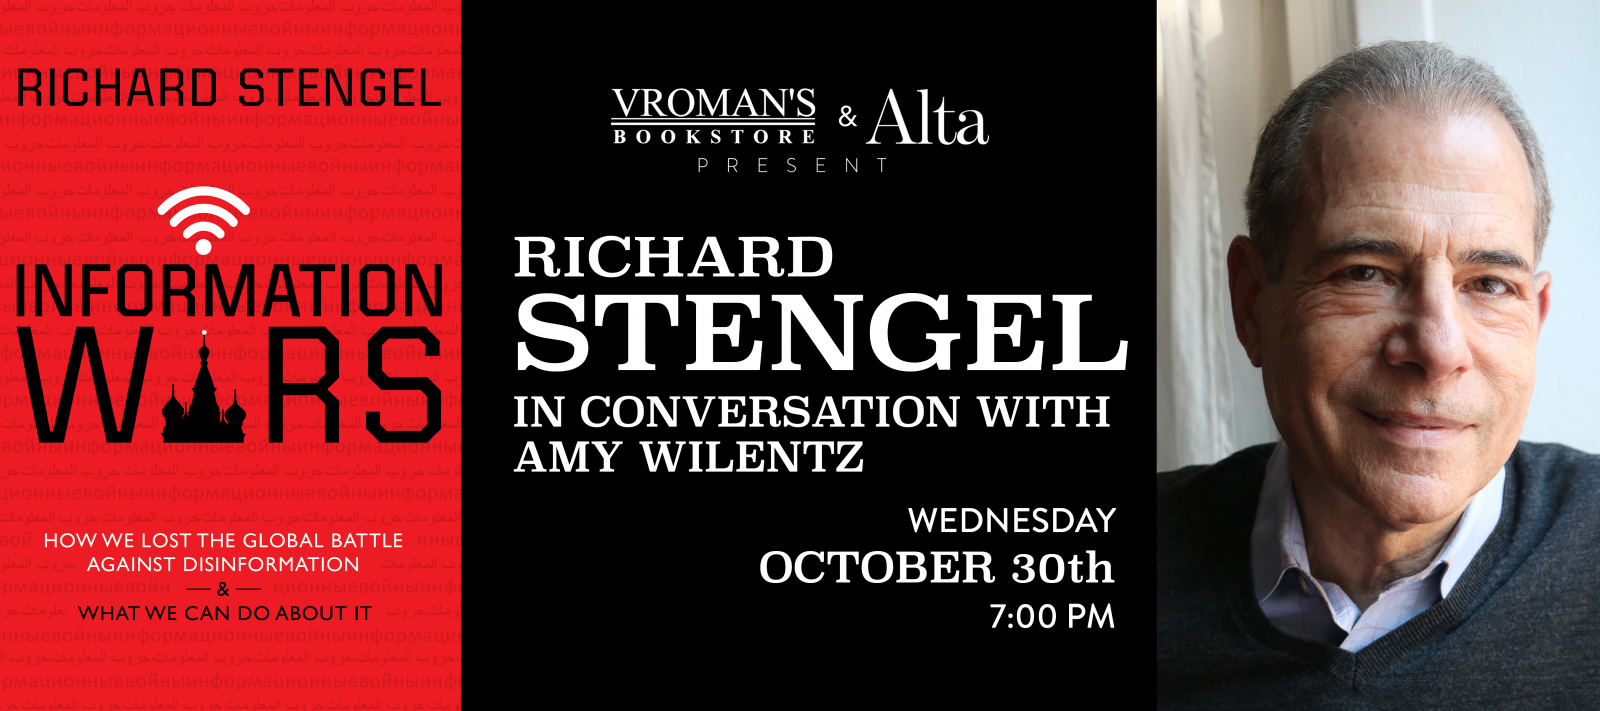 book signing with Richard Stengel and Amy Wilentz on Wednesday October 30th at 7pm